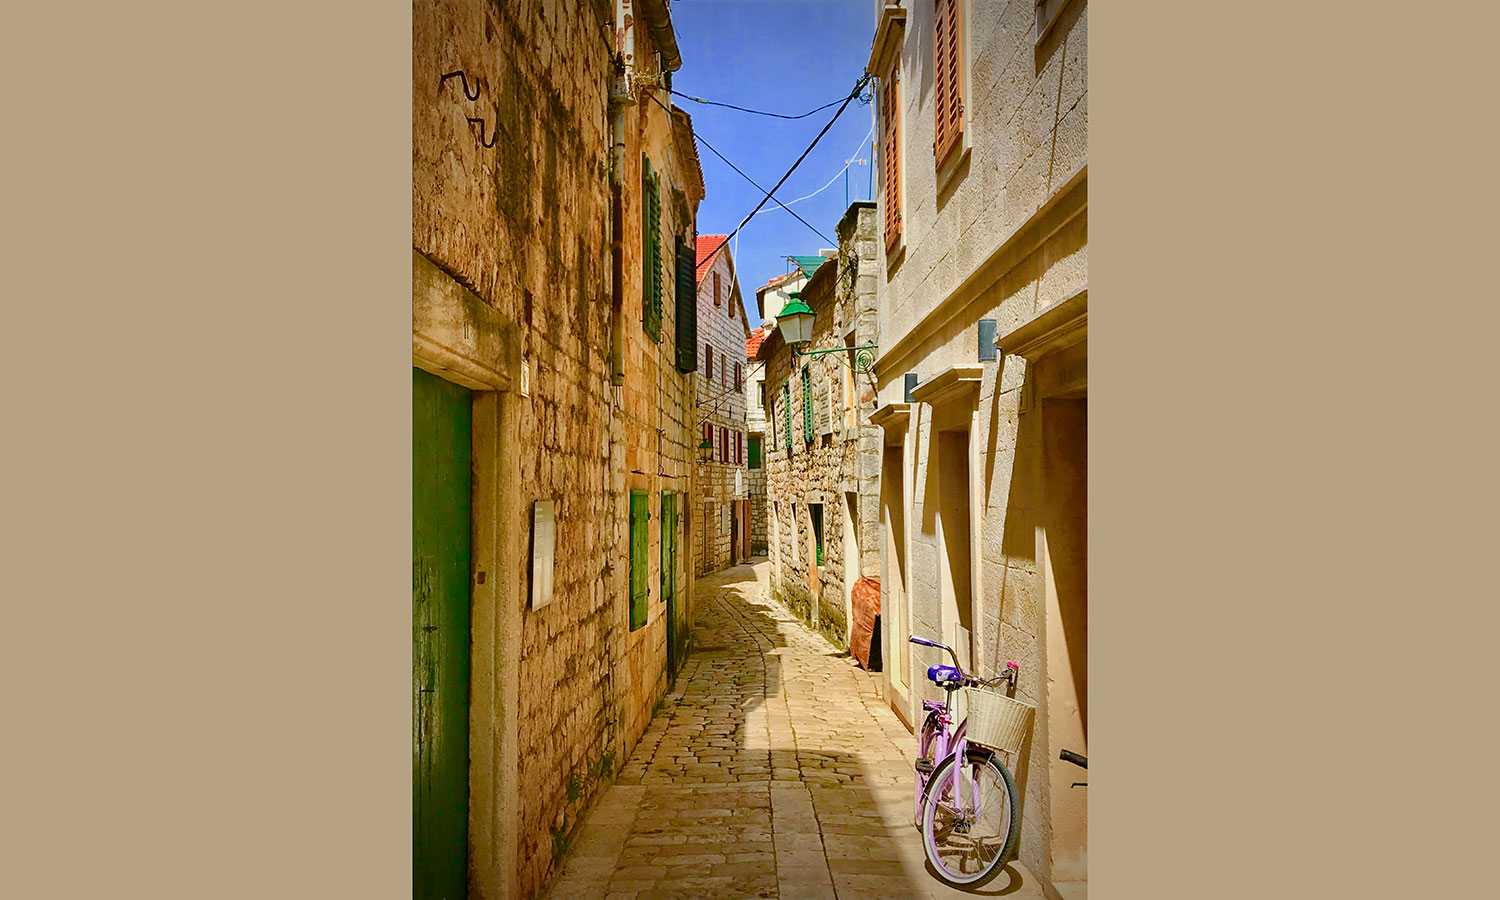 9-Street-life-1st-place-Croatia_Alley